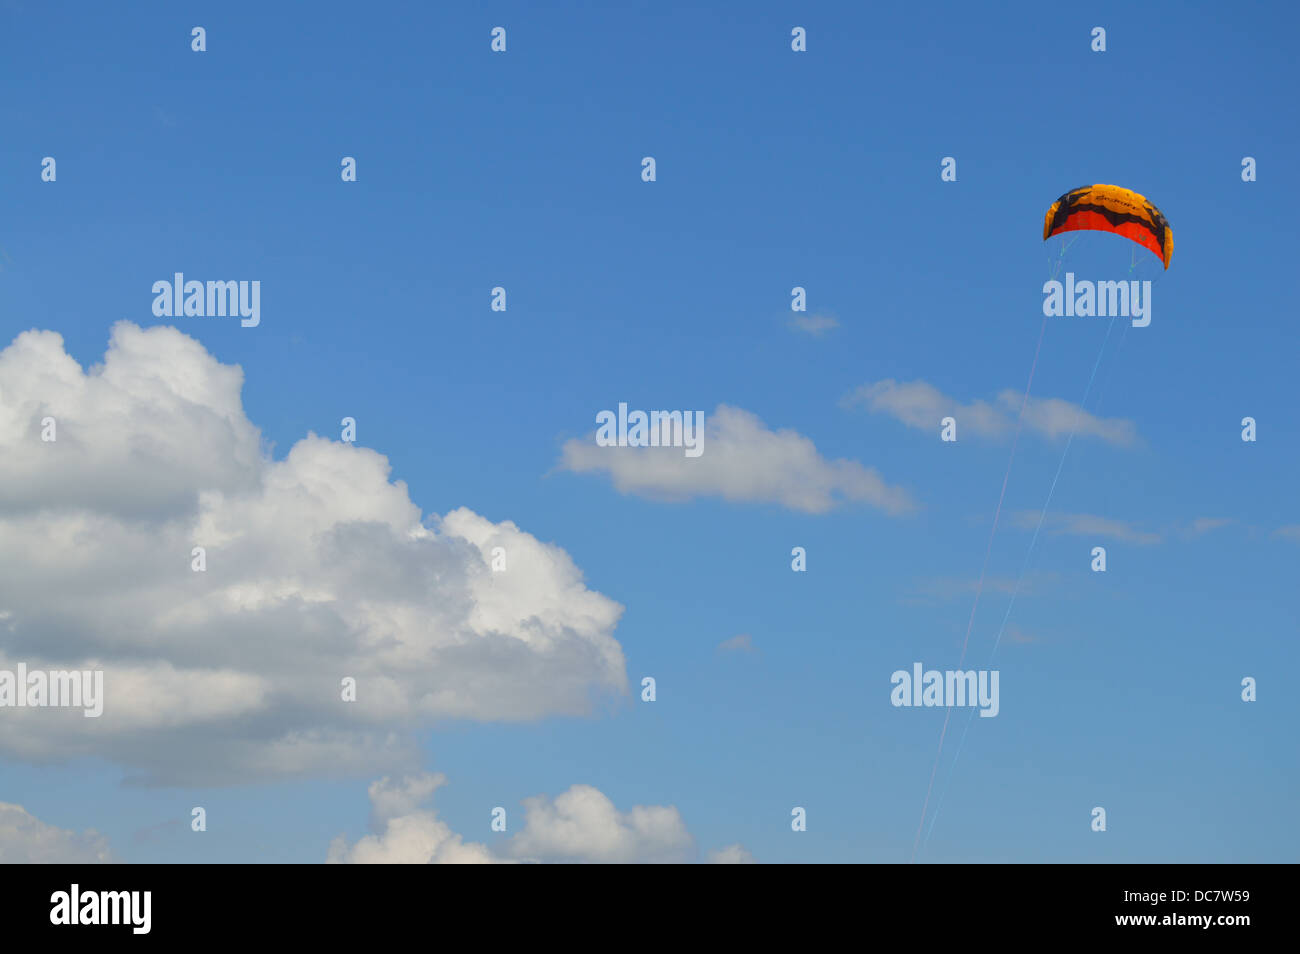 a kite flying - Stock Image